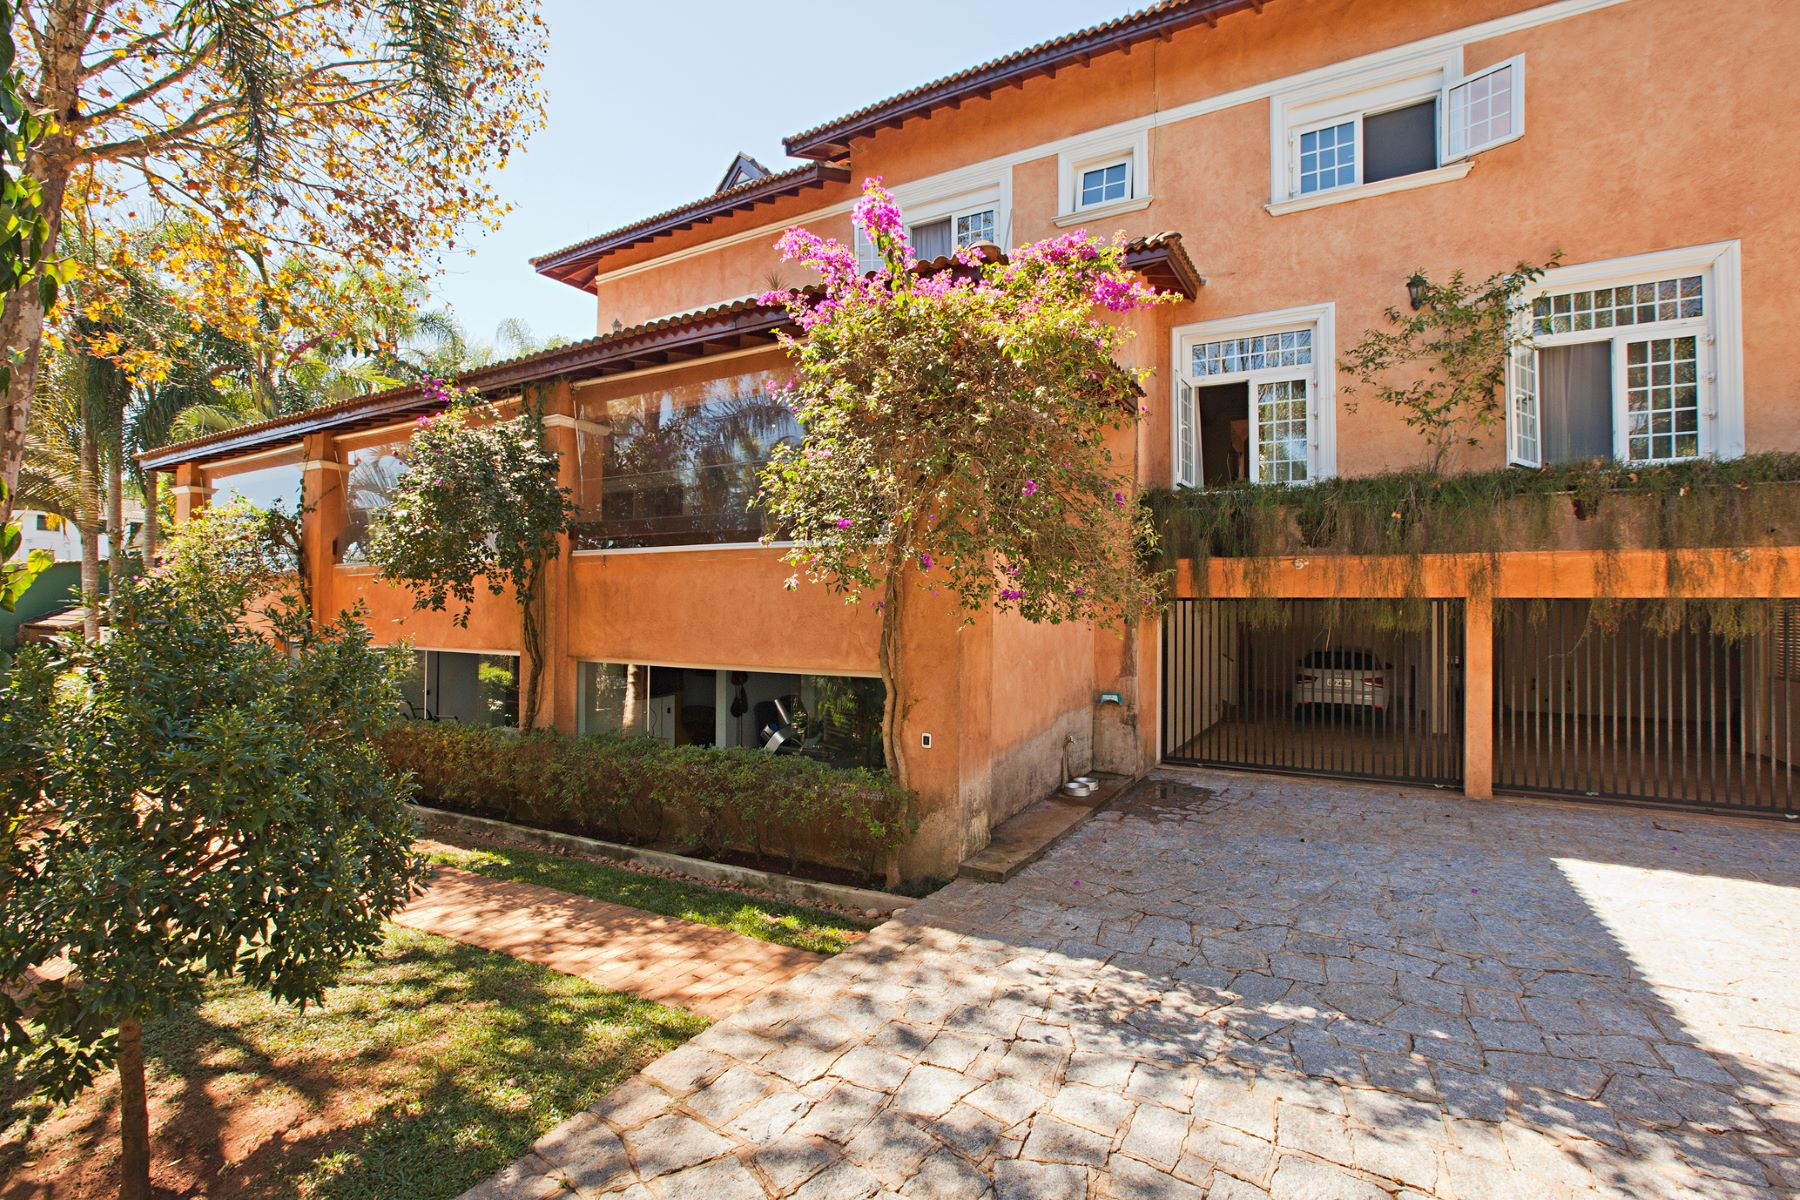 Single Family Home for Sale at Tuscany House Rua Alameda das Andorinhas Other Sao Paulo, Sao Paulo, 07600000 Brazil